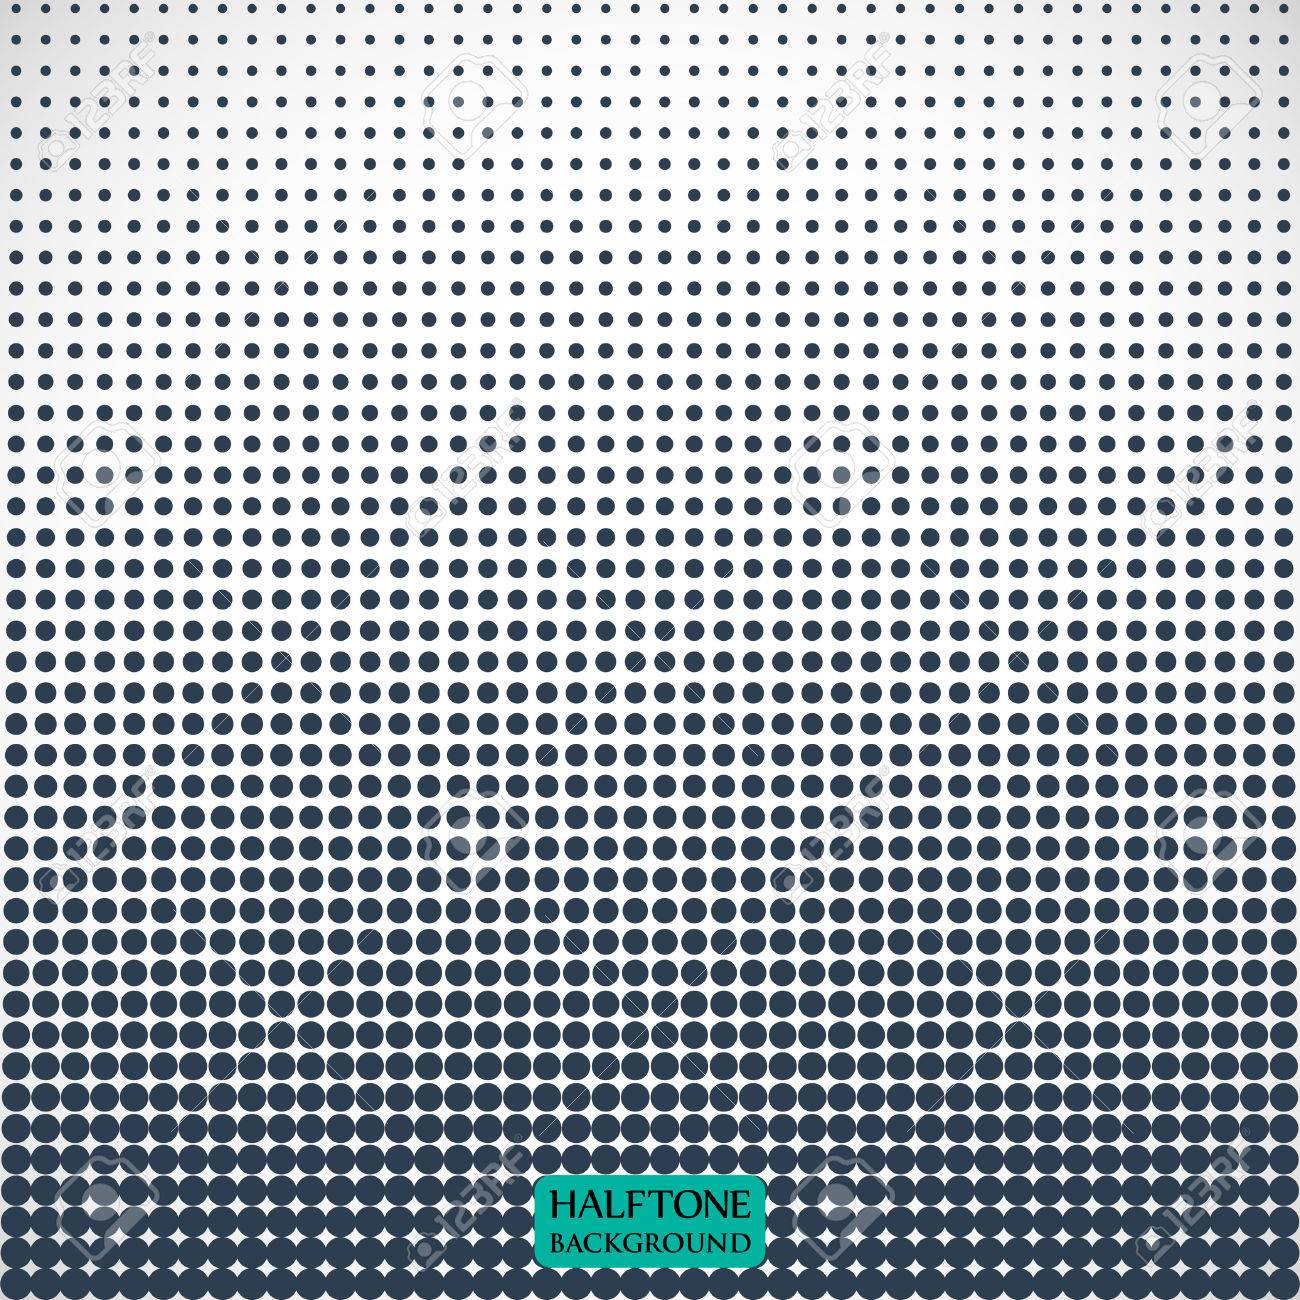 Halftone of the gray dots on gray background - 33557542